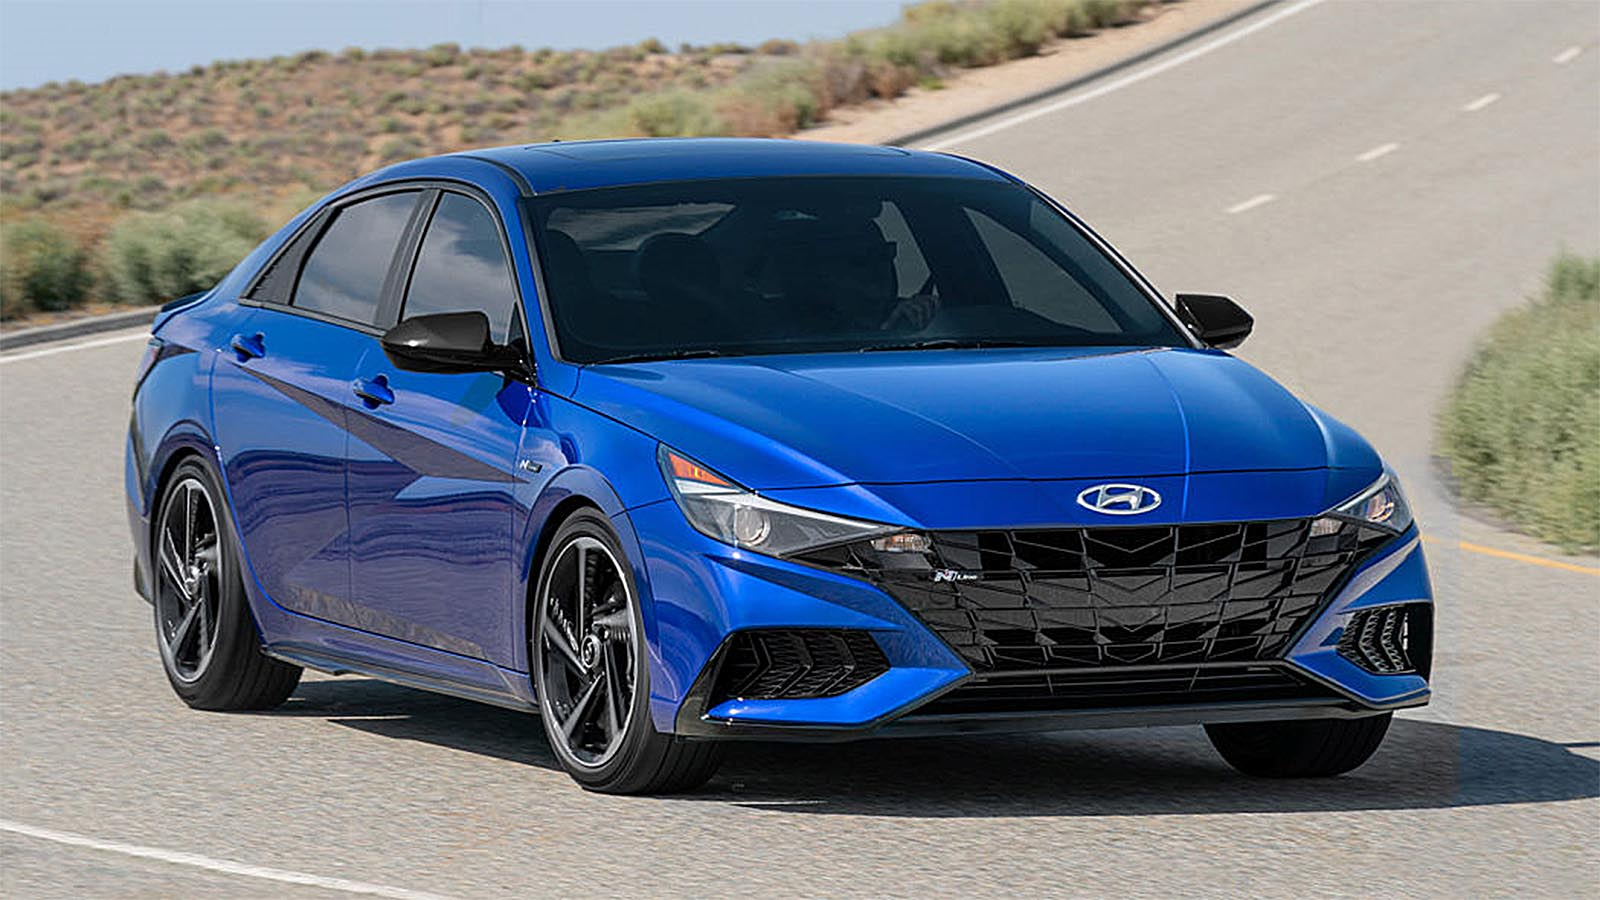 Hyundai Elantra N Line: Specs, Price, Features, Launch